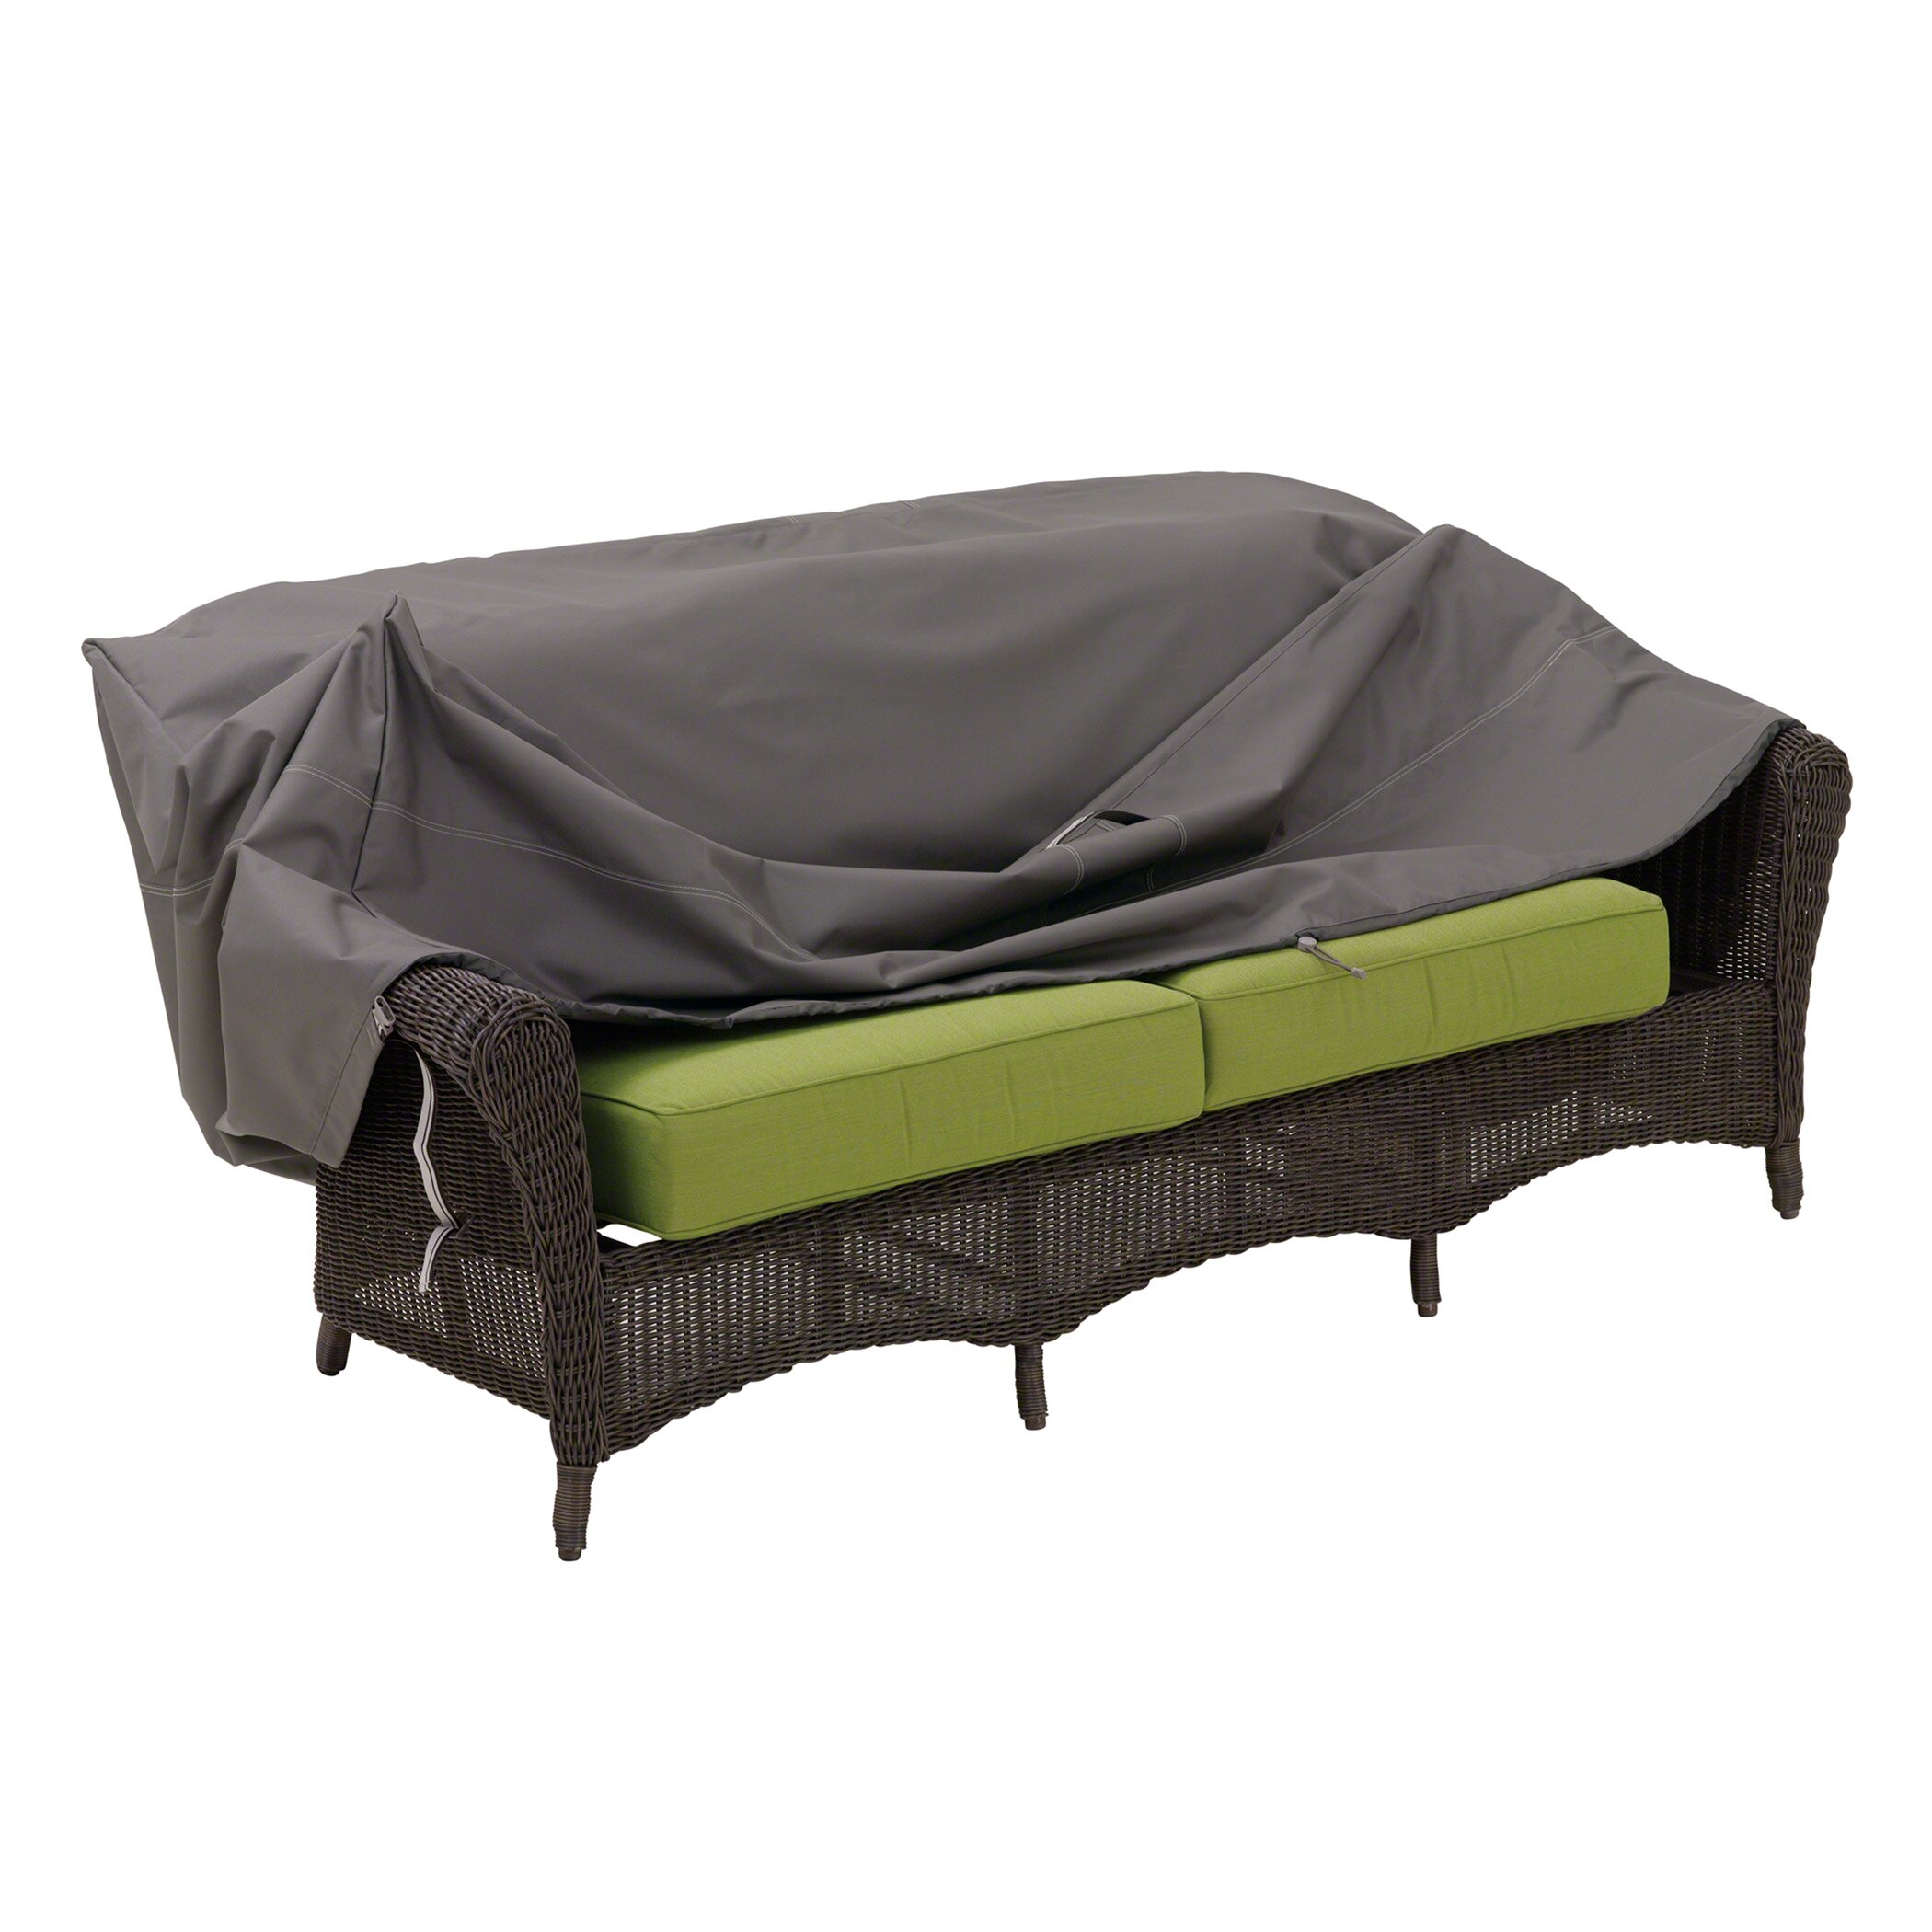 Sofa Patio Furniture Covers Classic .